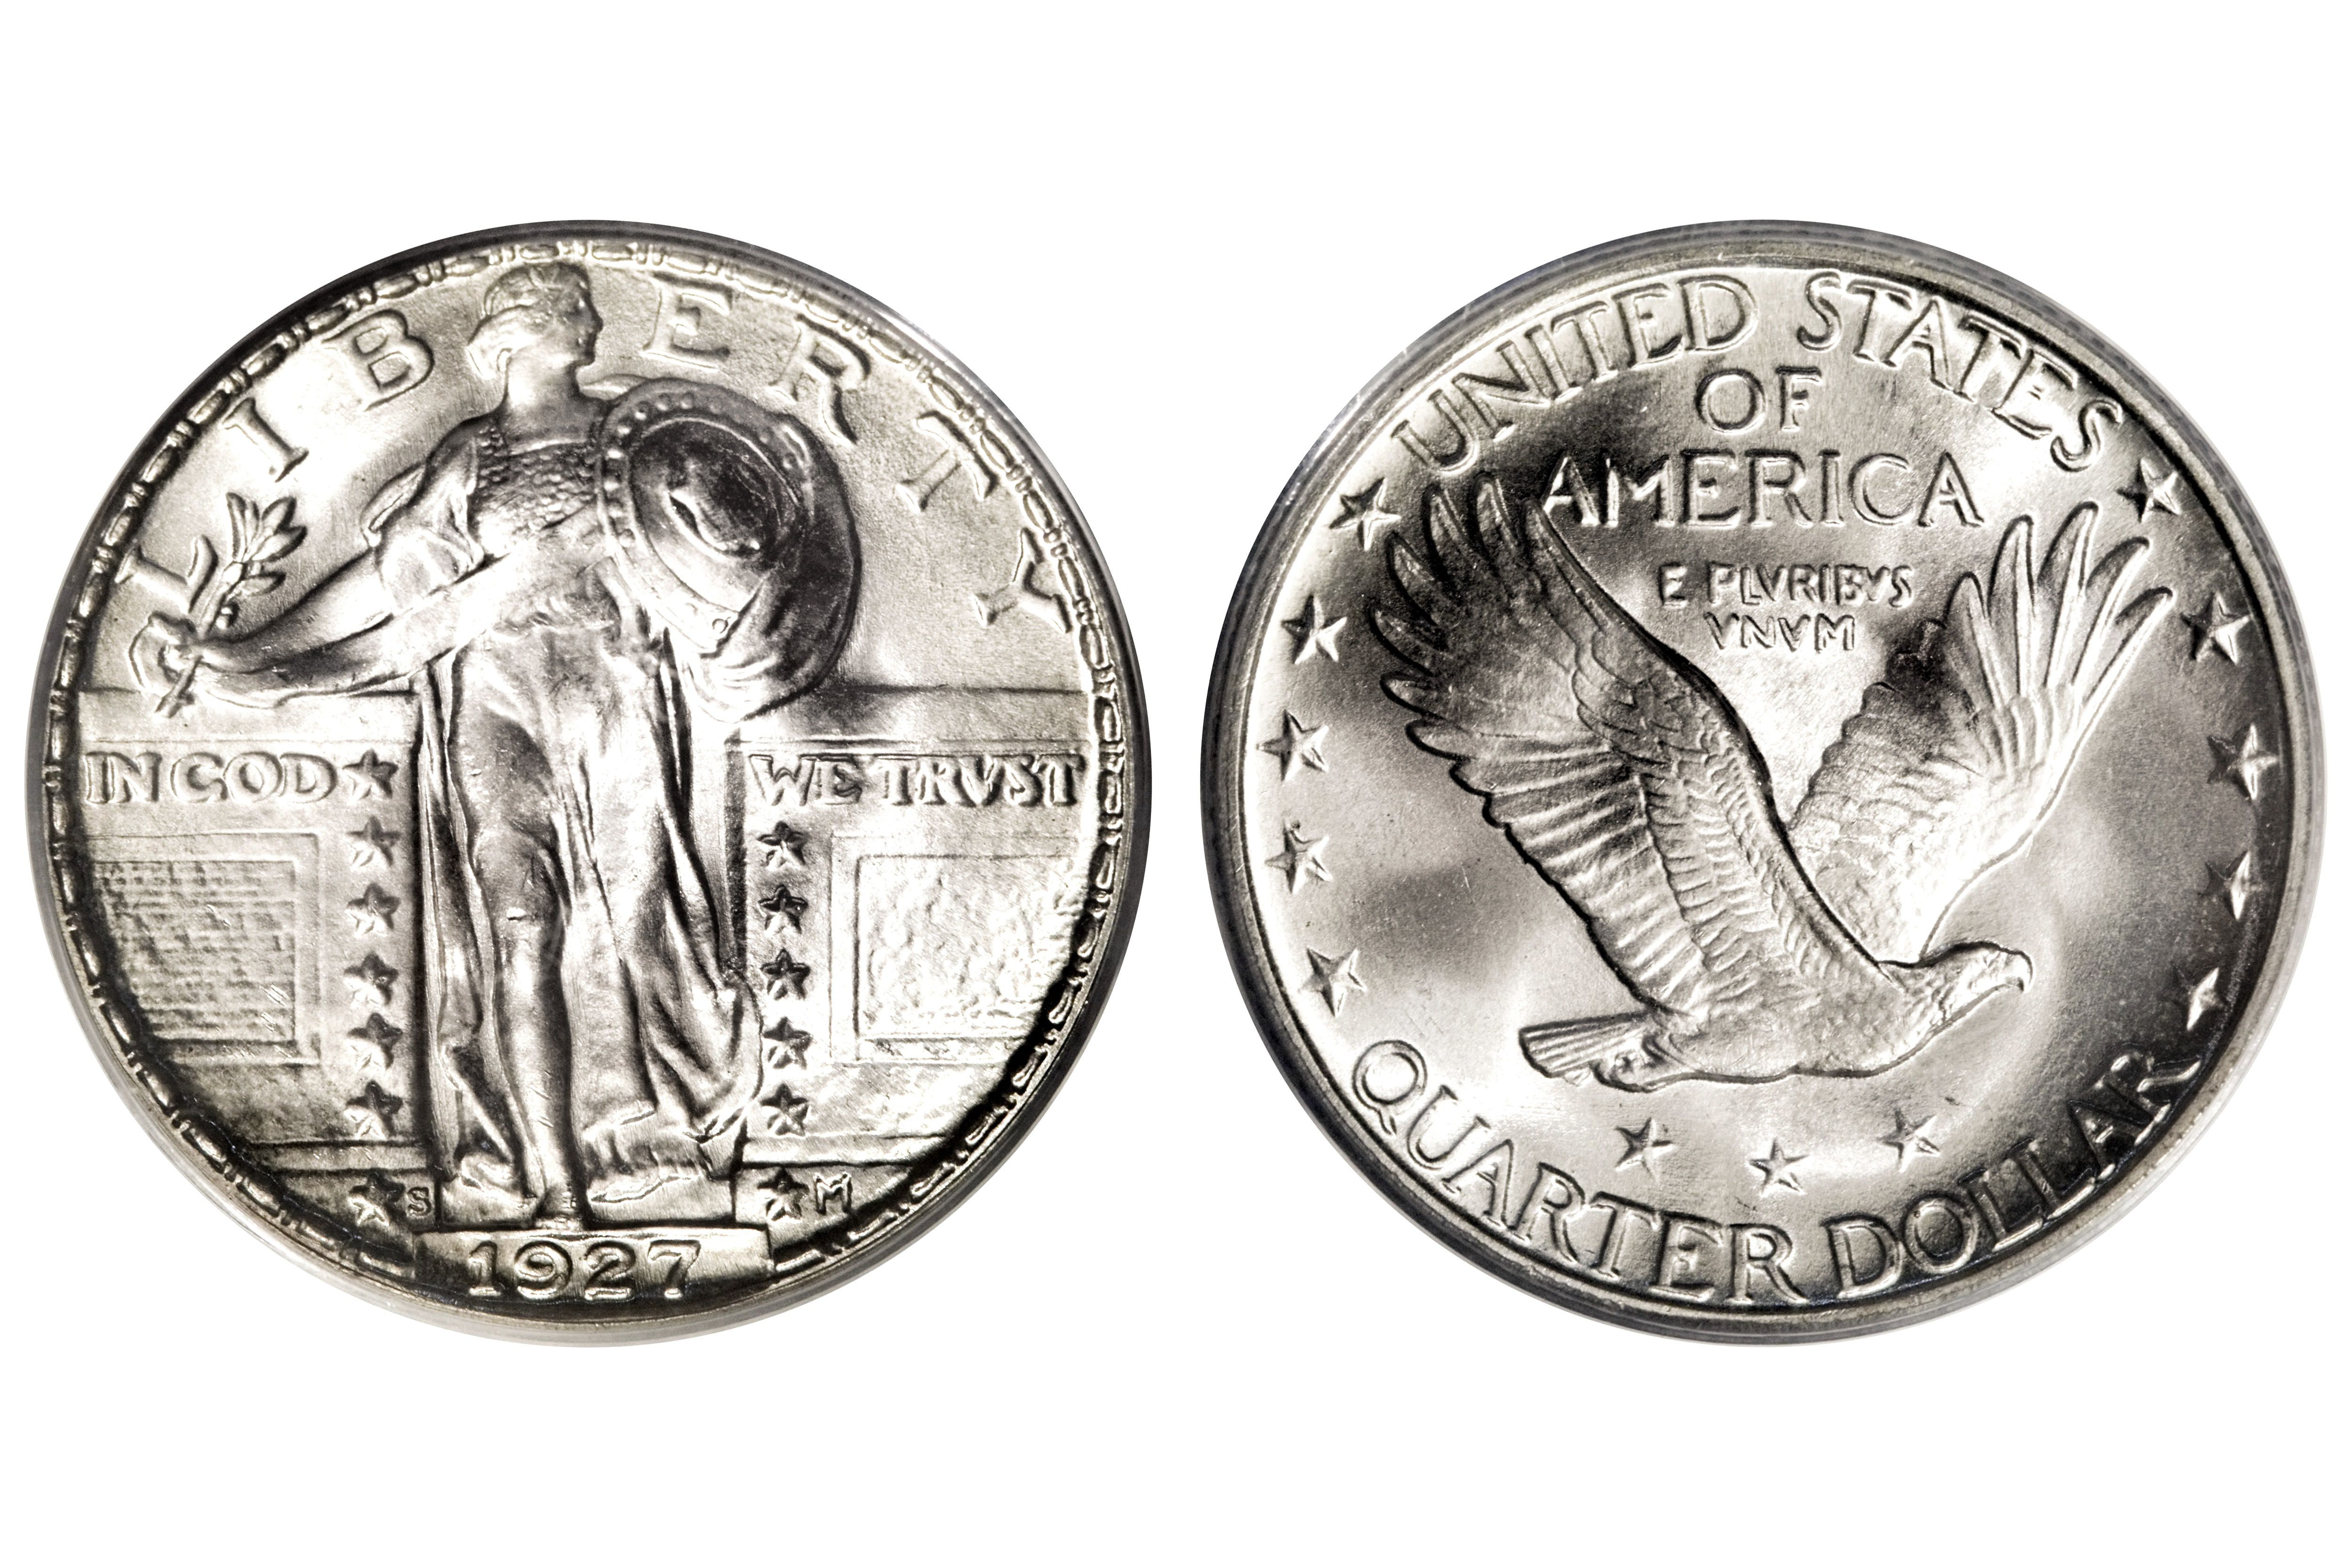 Collecting Standing Liberty Quarters